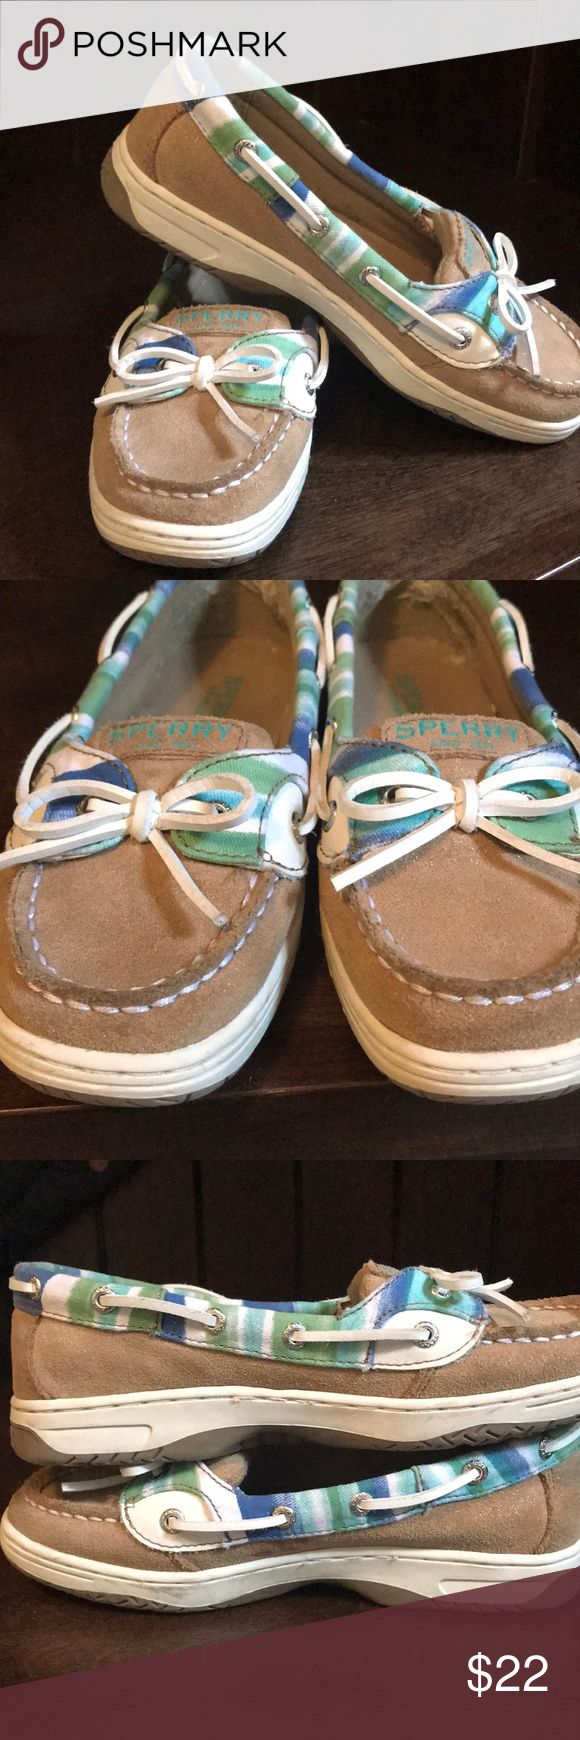 🆕 Sperry Angelfish boat shoes These classic Sperry Angelfish boat shoes have a tan shimmer base with a blue, green & white trim.  Darling for spring & summer days.  My daughter had a huge growth spurt so these are still in very good used condition.  There is some wear to the inner heel and to the insteps of the right shoe (shown in photos), but otherwise look nearly new.  Size 2.5. Sperry Shoes